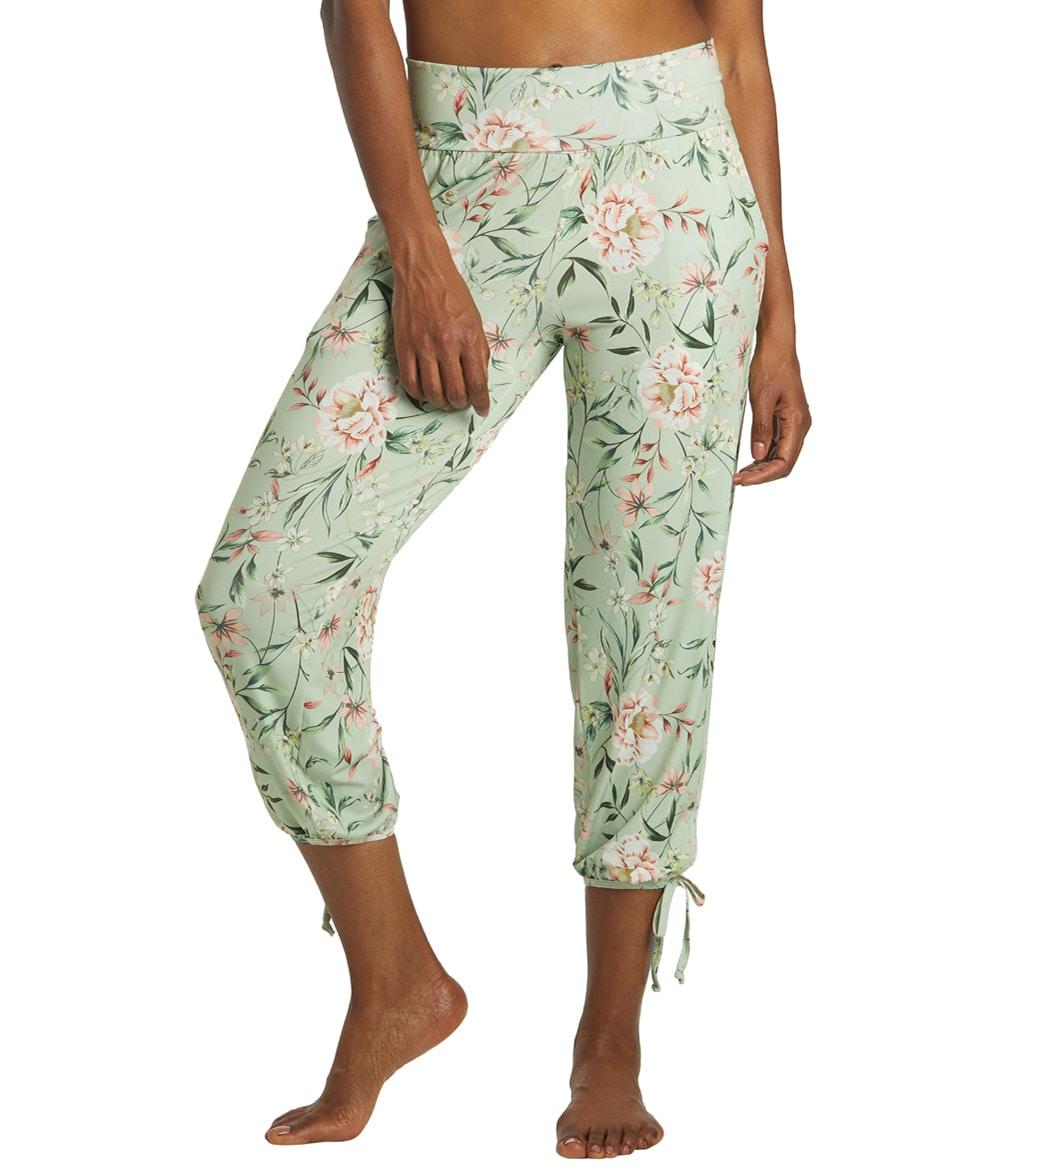 a13b030a06286 Onzie Gypsy Joggers at YogaOutlet.com - Free Shipping